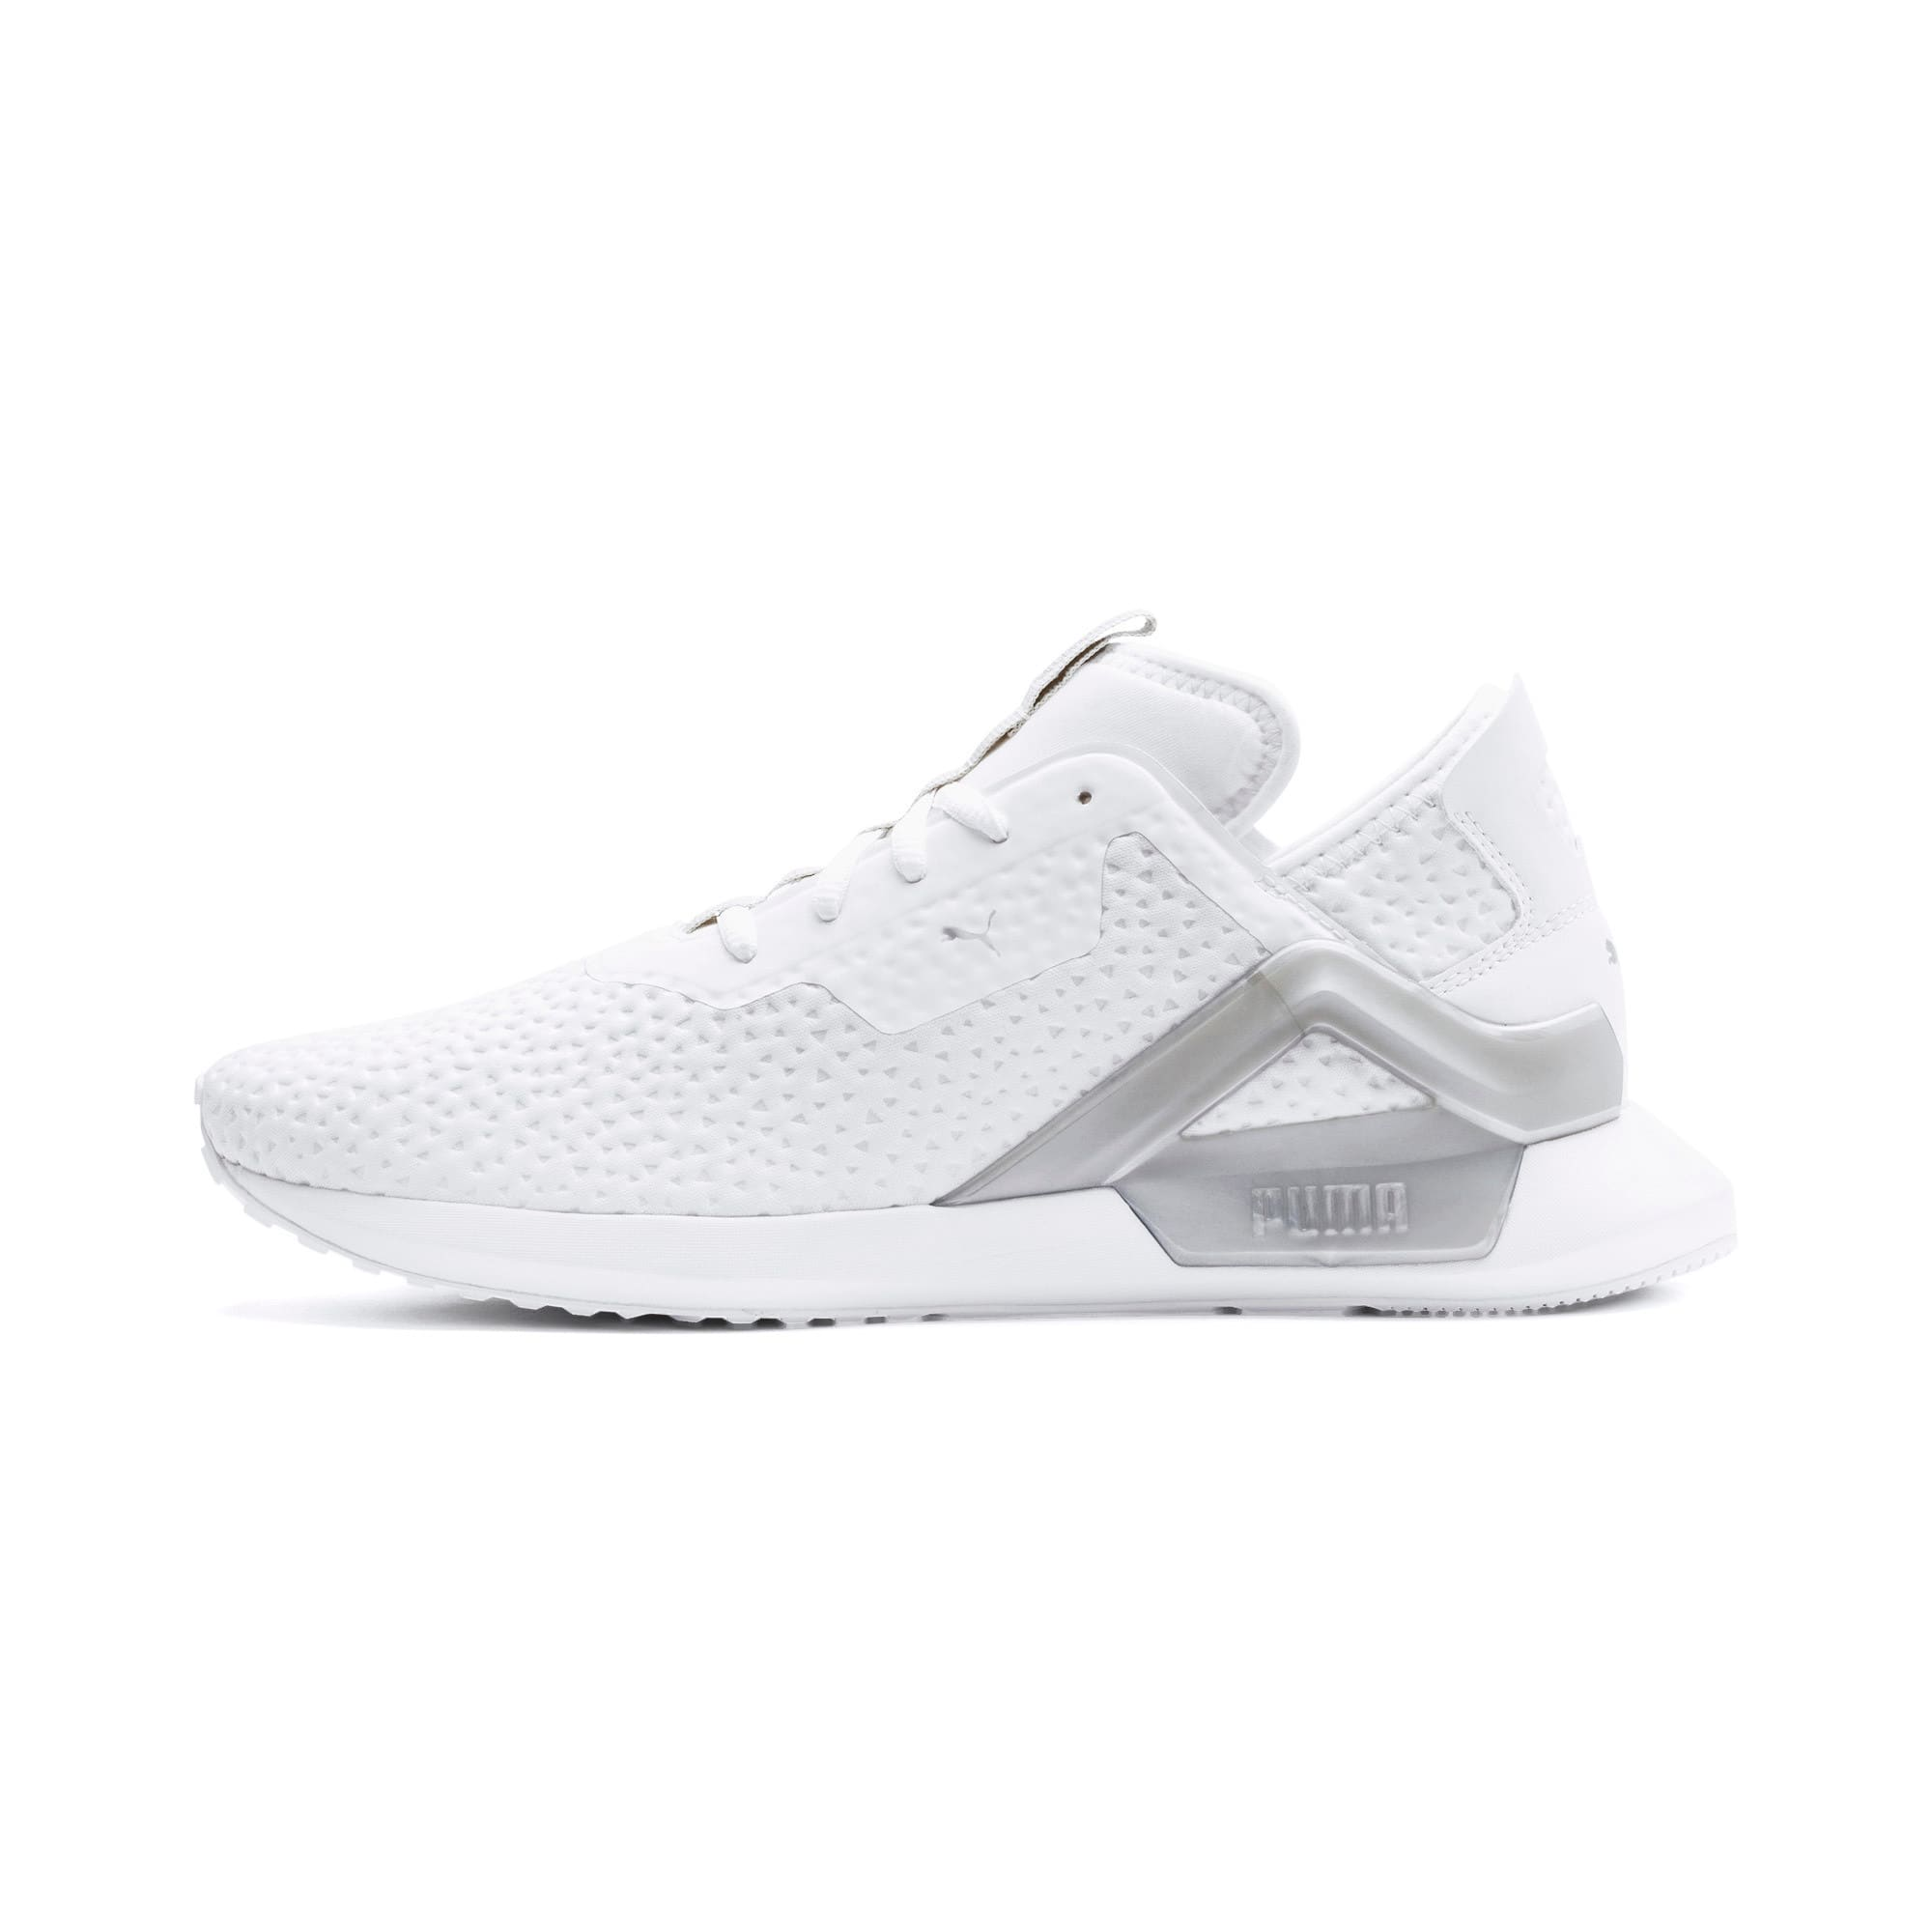 Thumbnail 1 of Rogue X Metallic Herren Sneaker, Puma White-Puma Silver, medium